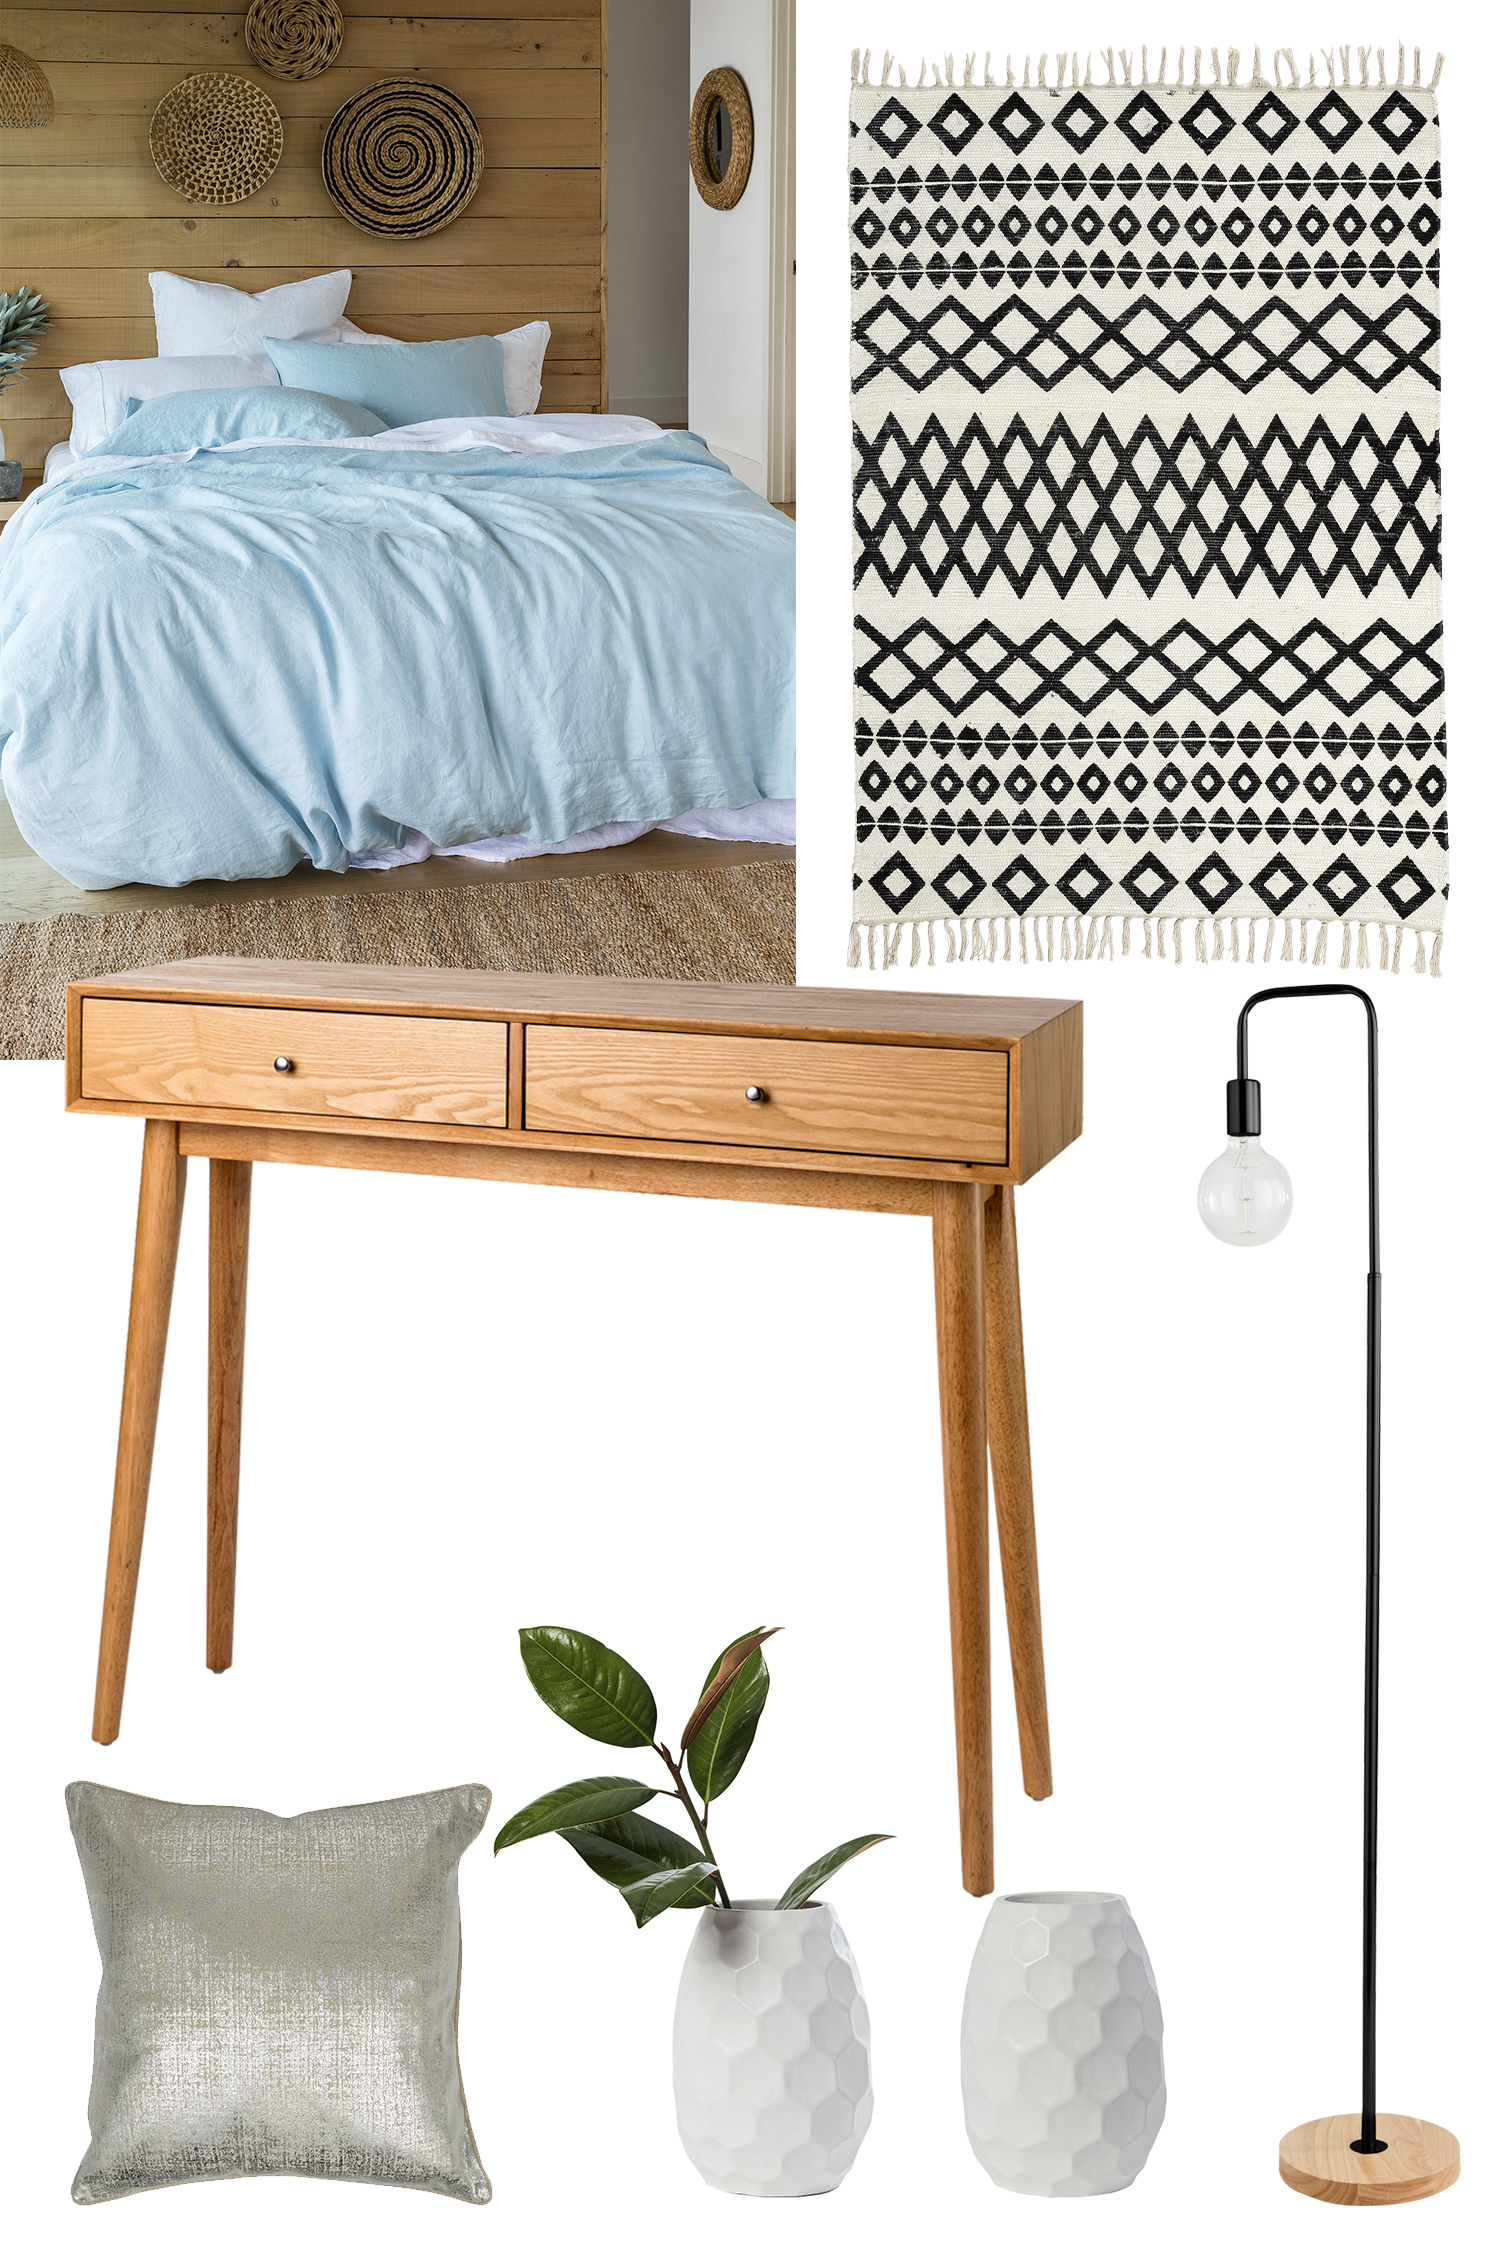 Decorating on a budget? Splash Out Homeware